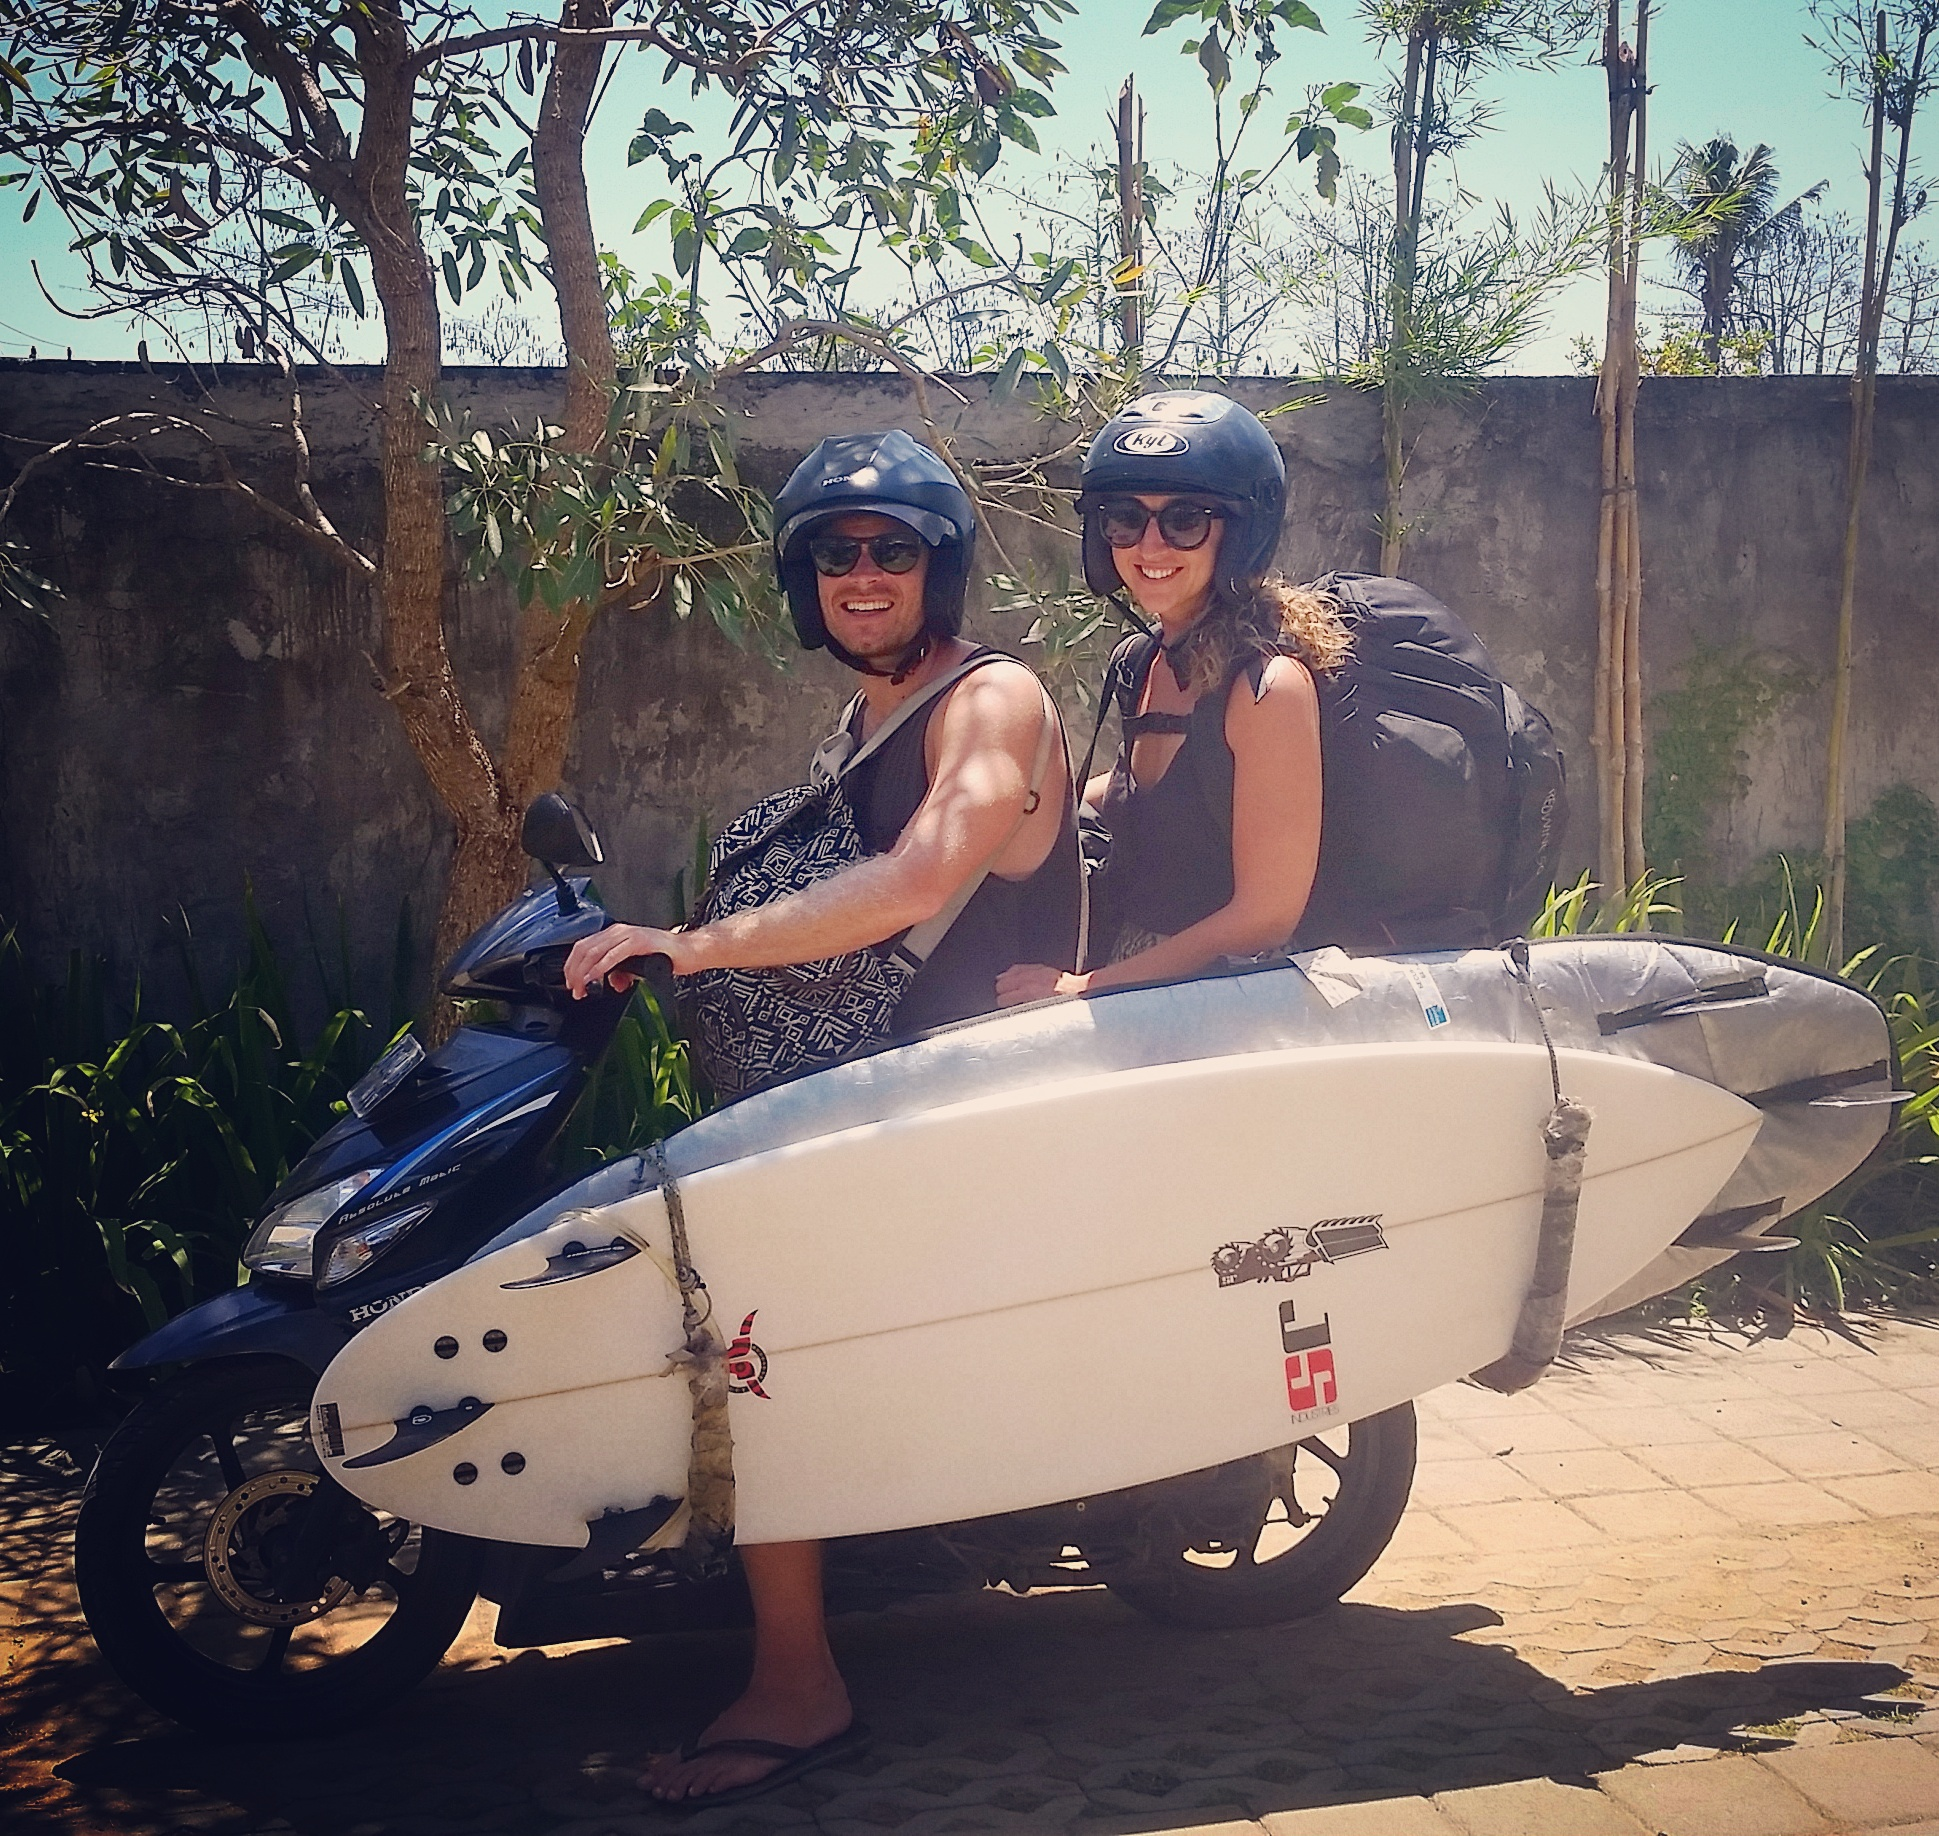 Scott and I rented this scooter for 5 weeks and the speedometer doesn't work but at $2 USD a day, who can complain.